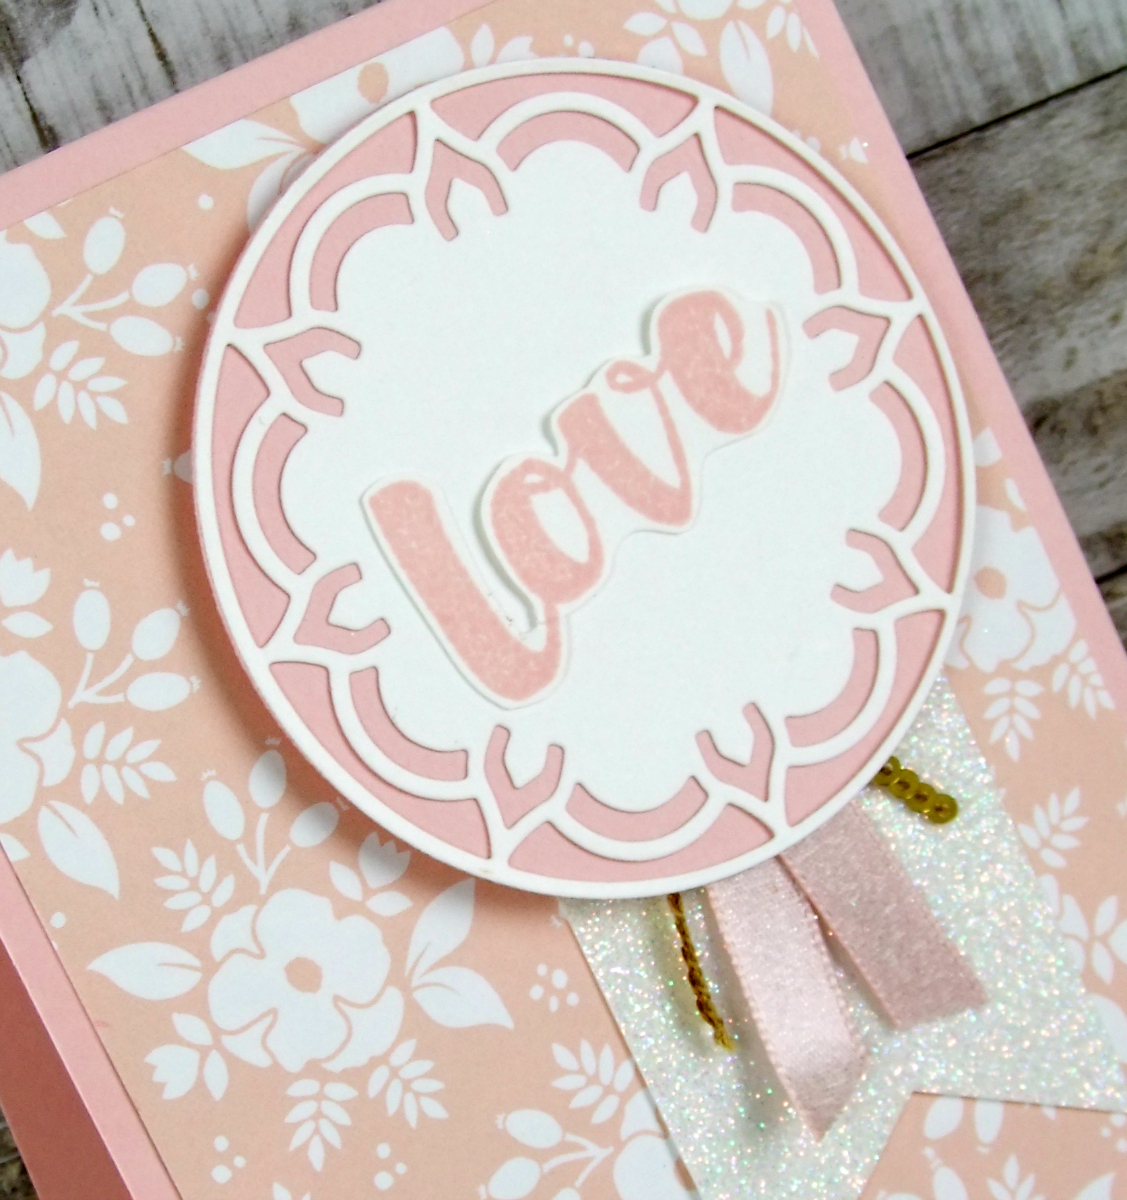 Use That Same Layering Circle Framlit To Then Cut A Of Powder Pink Cardstock Layer Behind The White This Makes Delicate